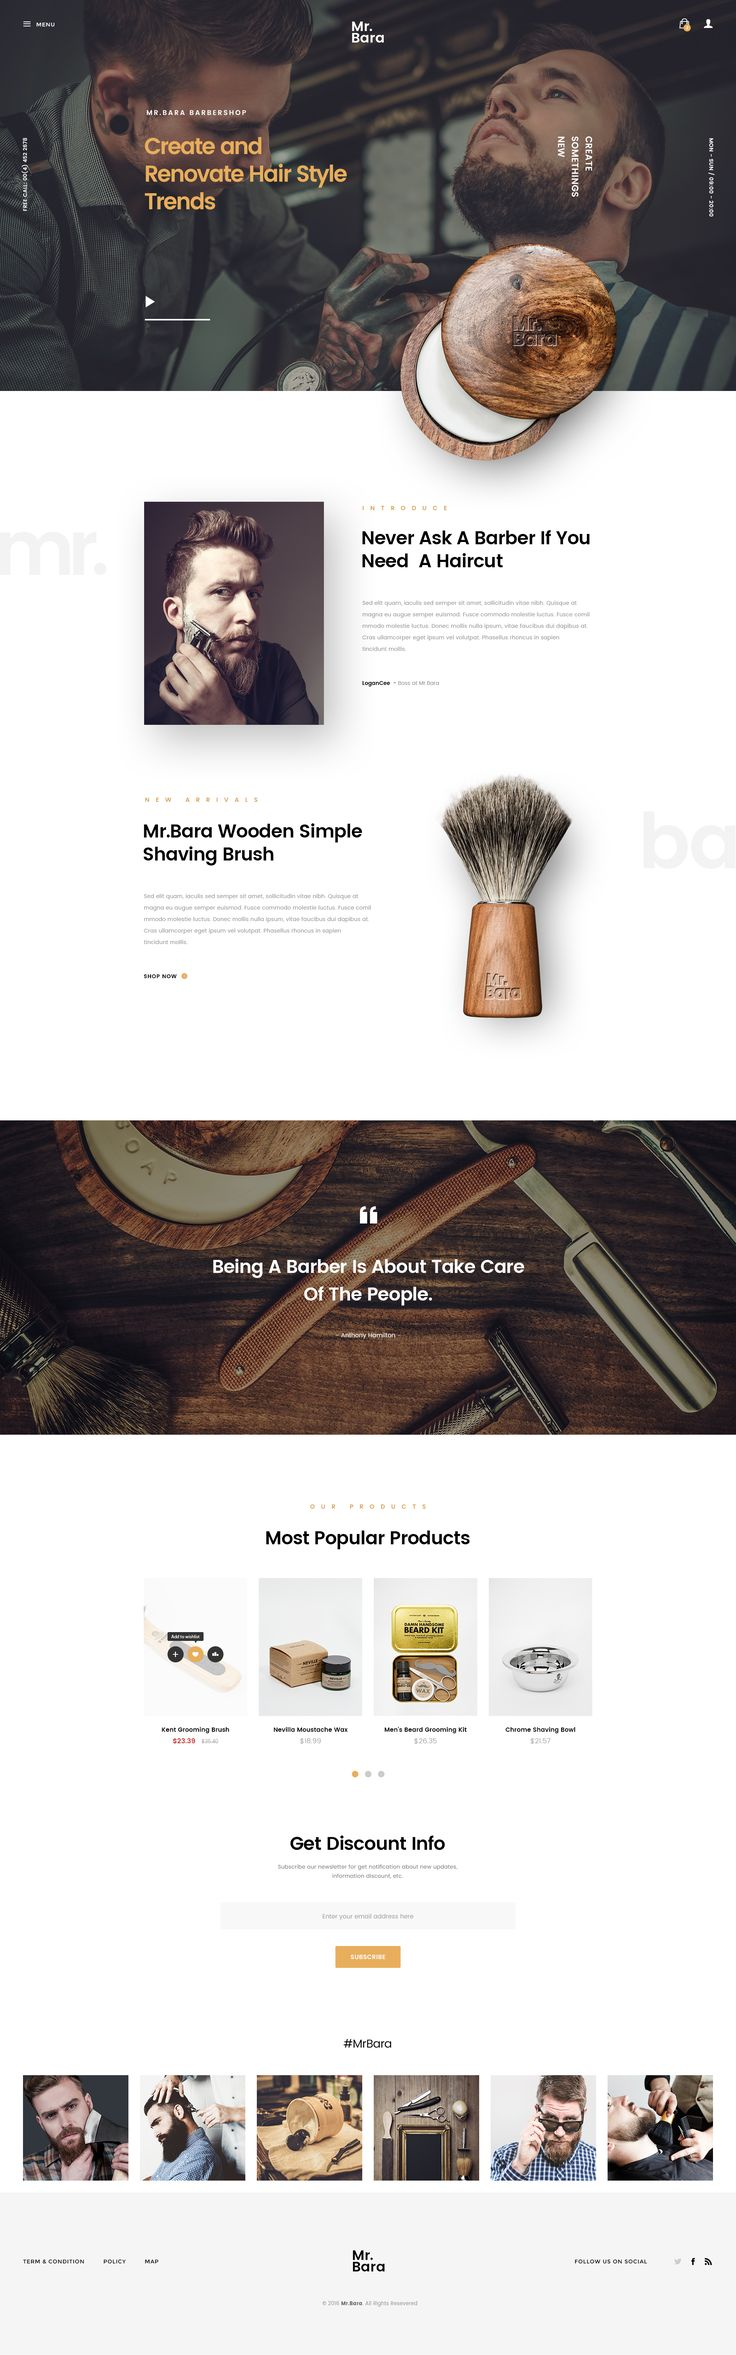 Buy Mr.Bara | A Premium Multi-Ecommerce PSD Template by LoganCee on ThemeForest. Mr.Bara is evaluated as my most unique multi-purpose ecommerce PSD template for shop online with clean and modern de...